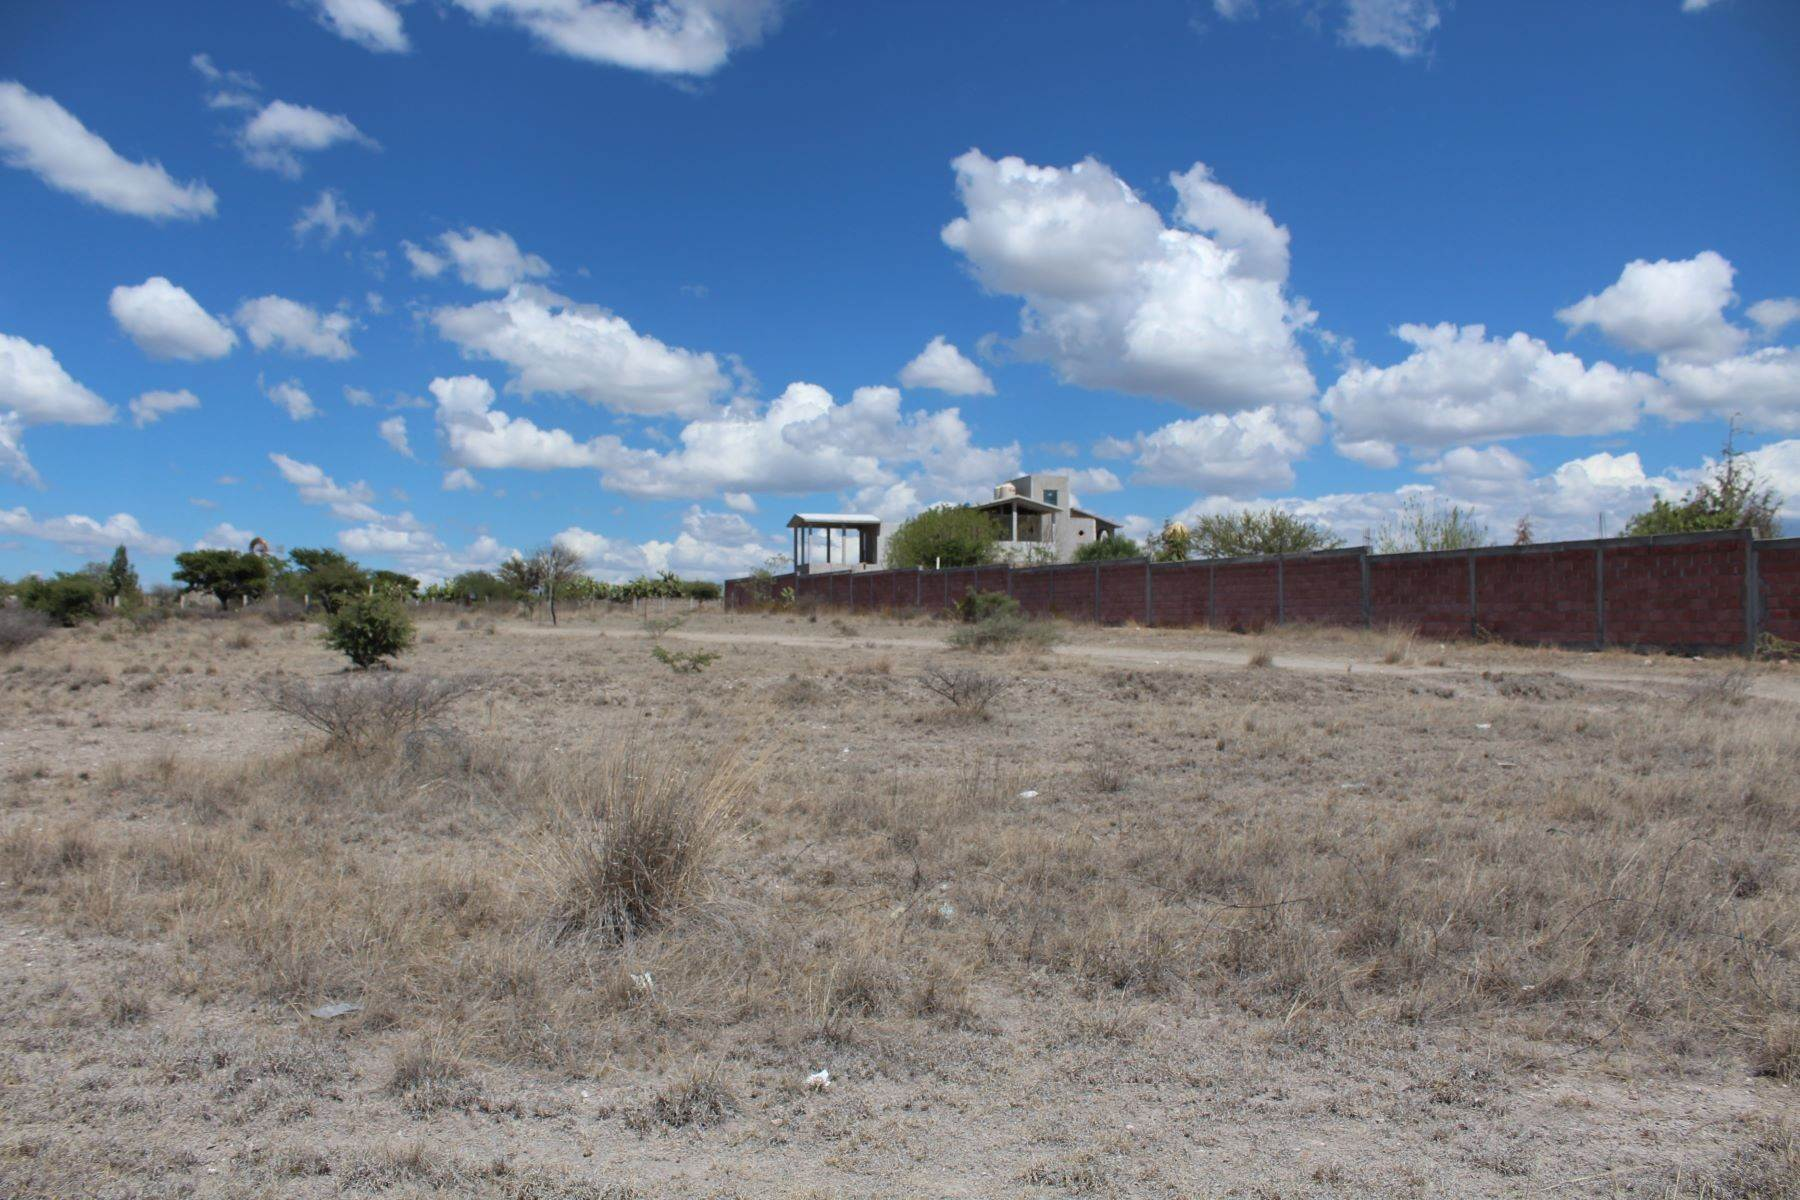 Property for Sale at Taboada Lot San Miguel De Allende, Guanajuato Mexico